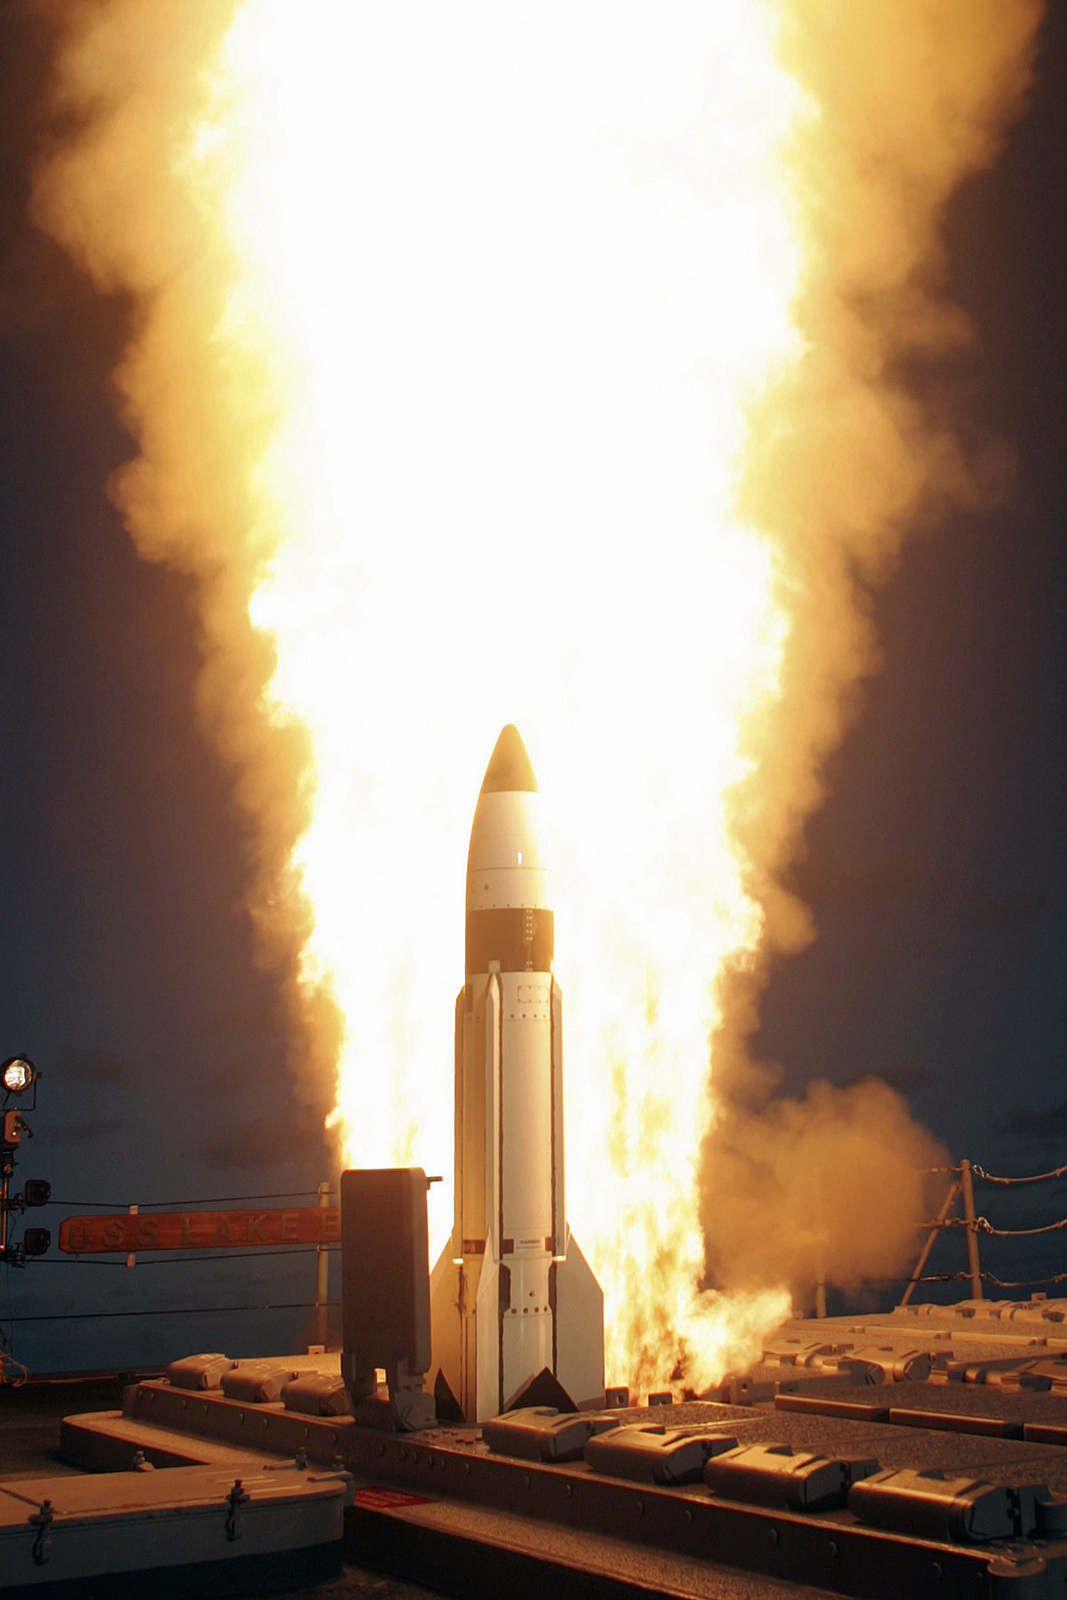 """A US Navy (USN) Standard Three (SM-3) is launched from the vertical launch system (VLS) aboard the Pearl Harbor based Ticonderoga Class Guided Cruiser USS LAKE ERIE (CG 70), during a joint Defense Agency, USN ballistic missile flight test. Minutes later, the SM-3 intercepted a separating ballistic missile threat target, launched form the Pacific Range Facility, Barking Sands, Kauai, Hawaii. The test was the sixth intercept, in seven flight tests, by the AEGIS (Airborne Early-Warning Ground-Environmental Integration Segment) Ballistic Defense, the maritime component of the """"Hit to Kill"""" Ballistic Defense System, being developed by the..."""